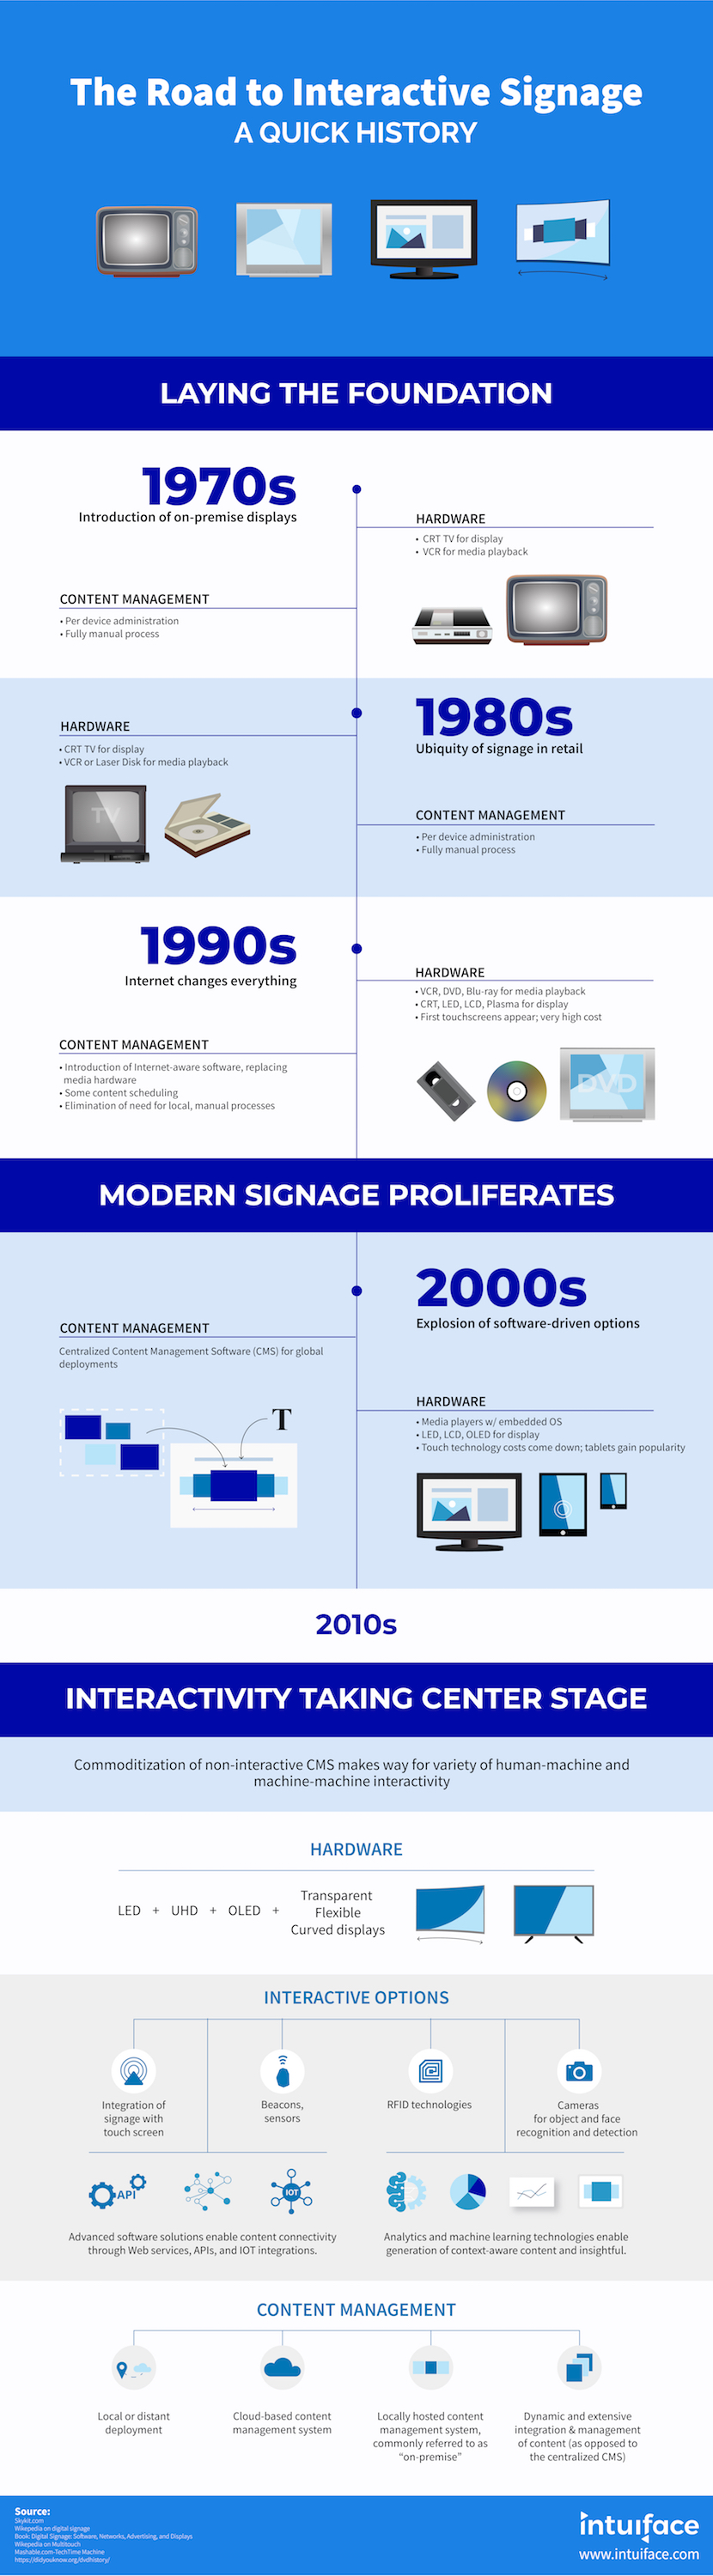 The Road to Interactive Signage - A Quick History (Infographic)